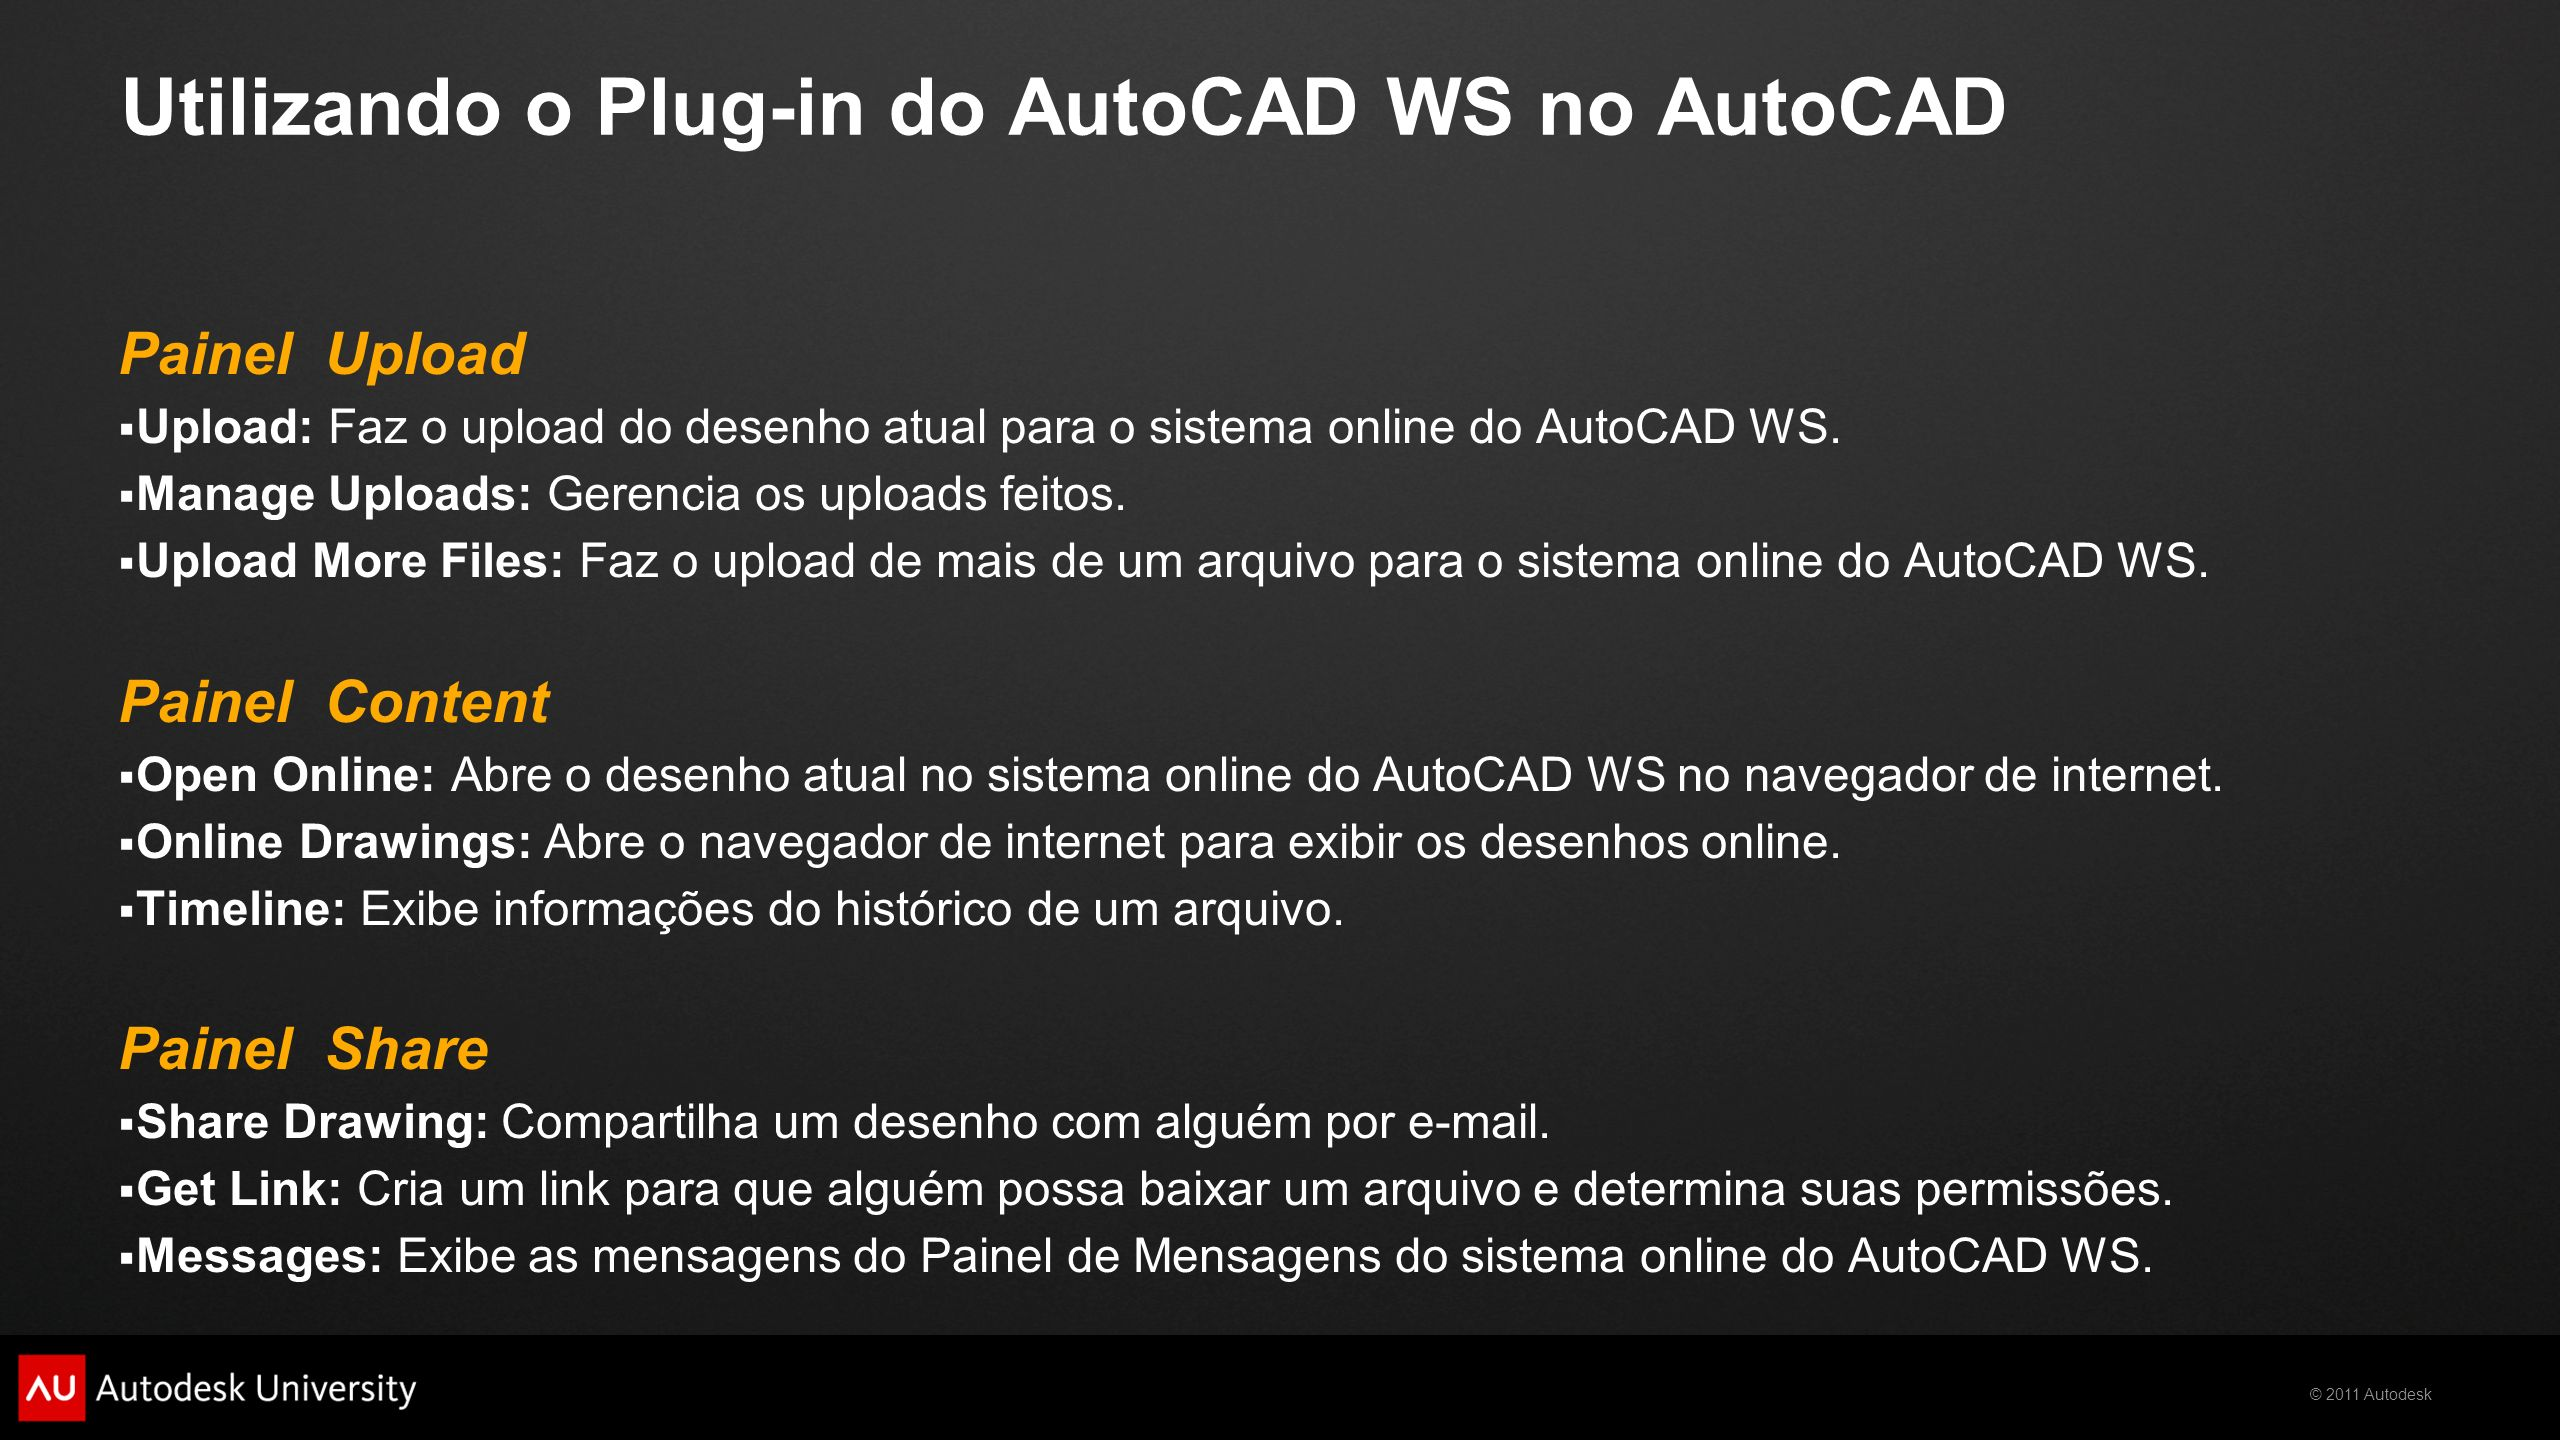 Utilizando o Plug-in do AutoCAD WS no AutoCAD